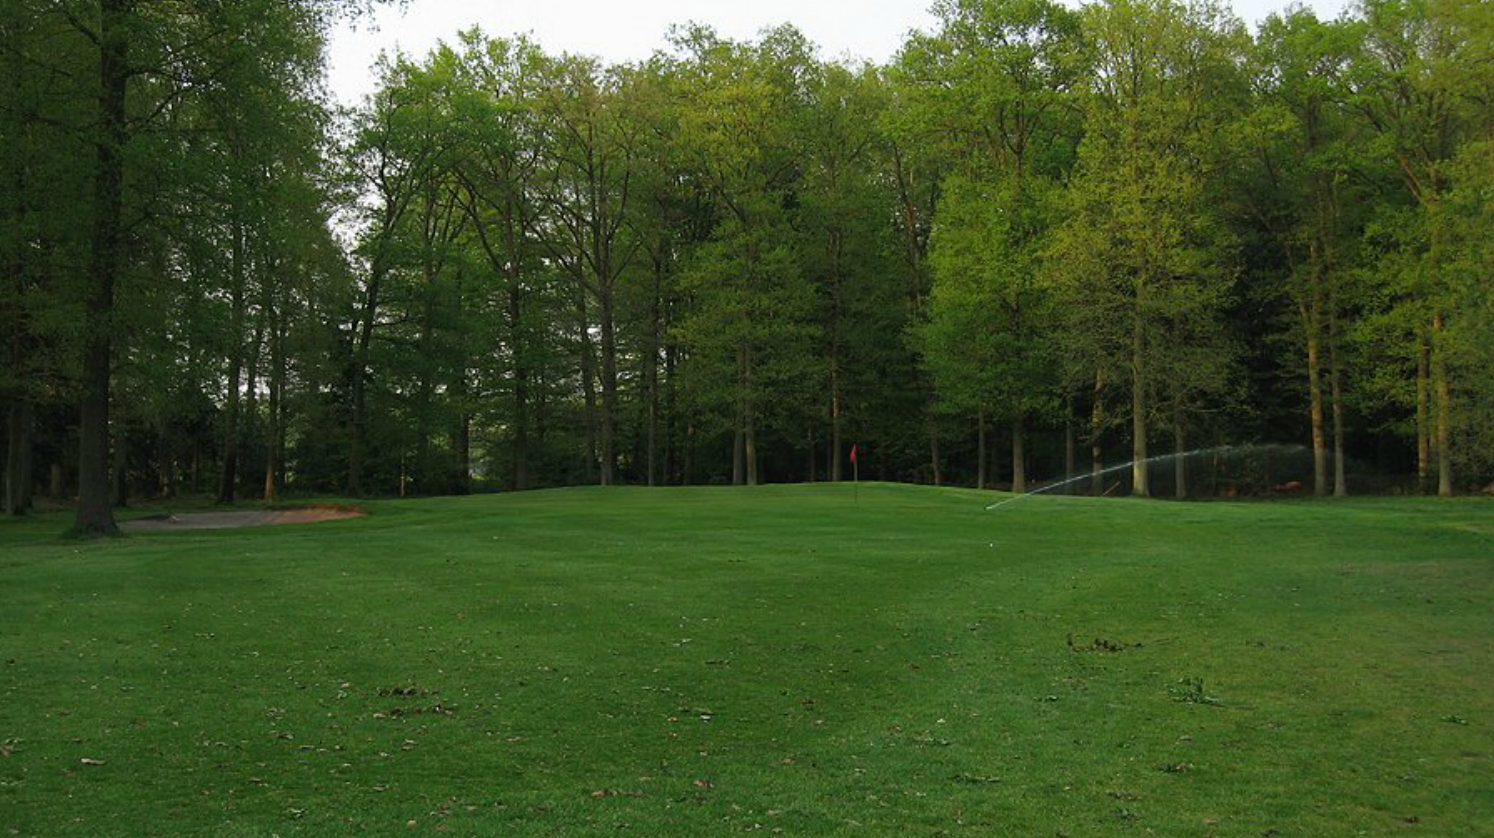 Hole 14 before. Hard to believe, but there is a bunker over there on the right.